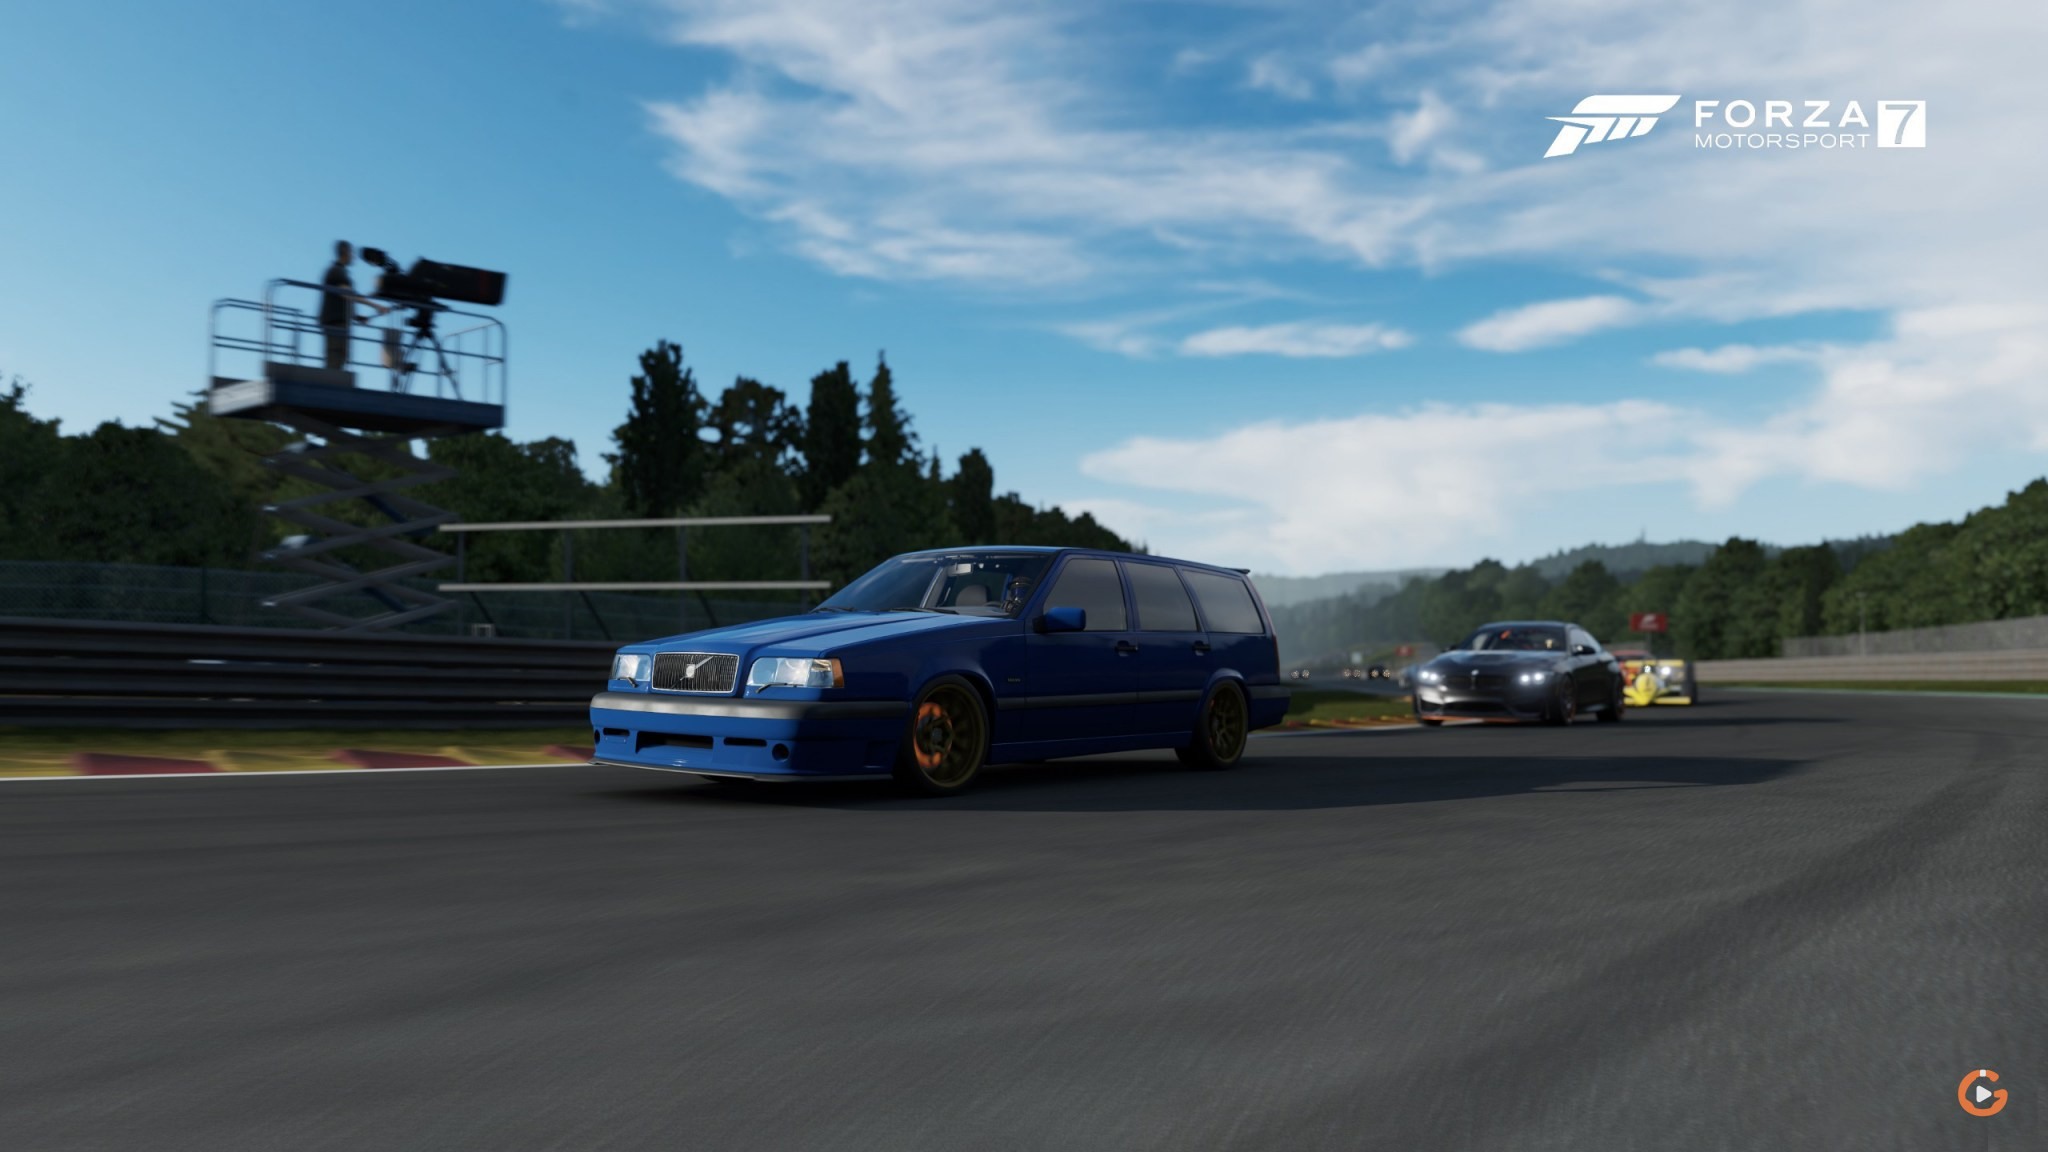 Forza Motorsport 7 Review Braising The Bar